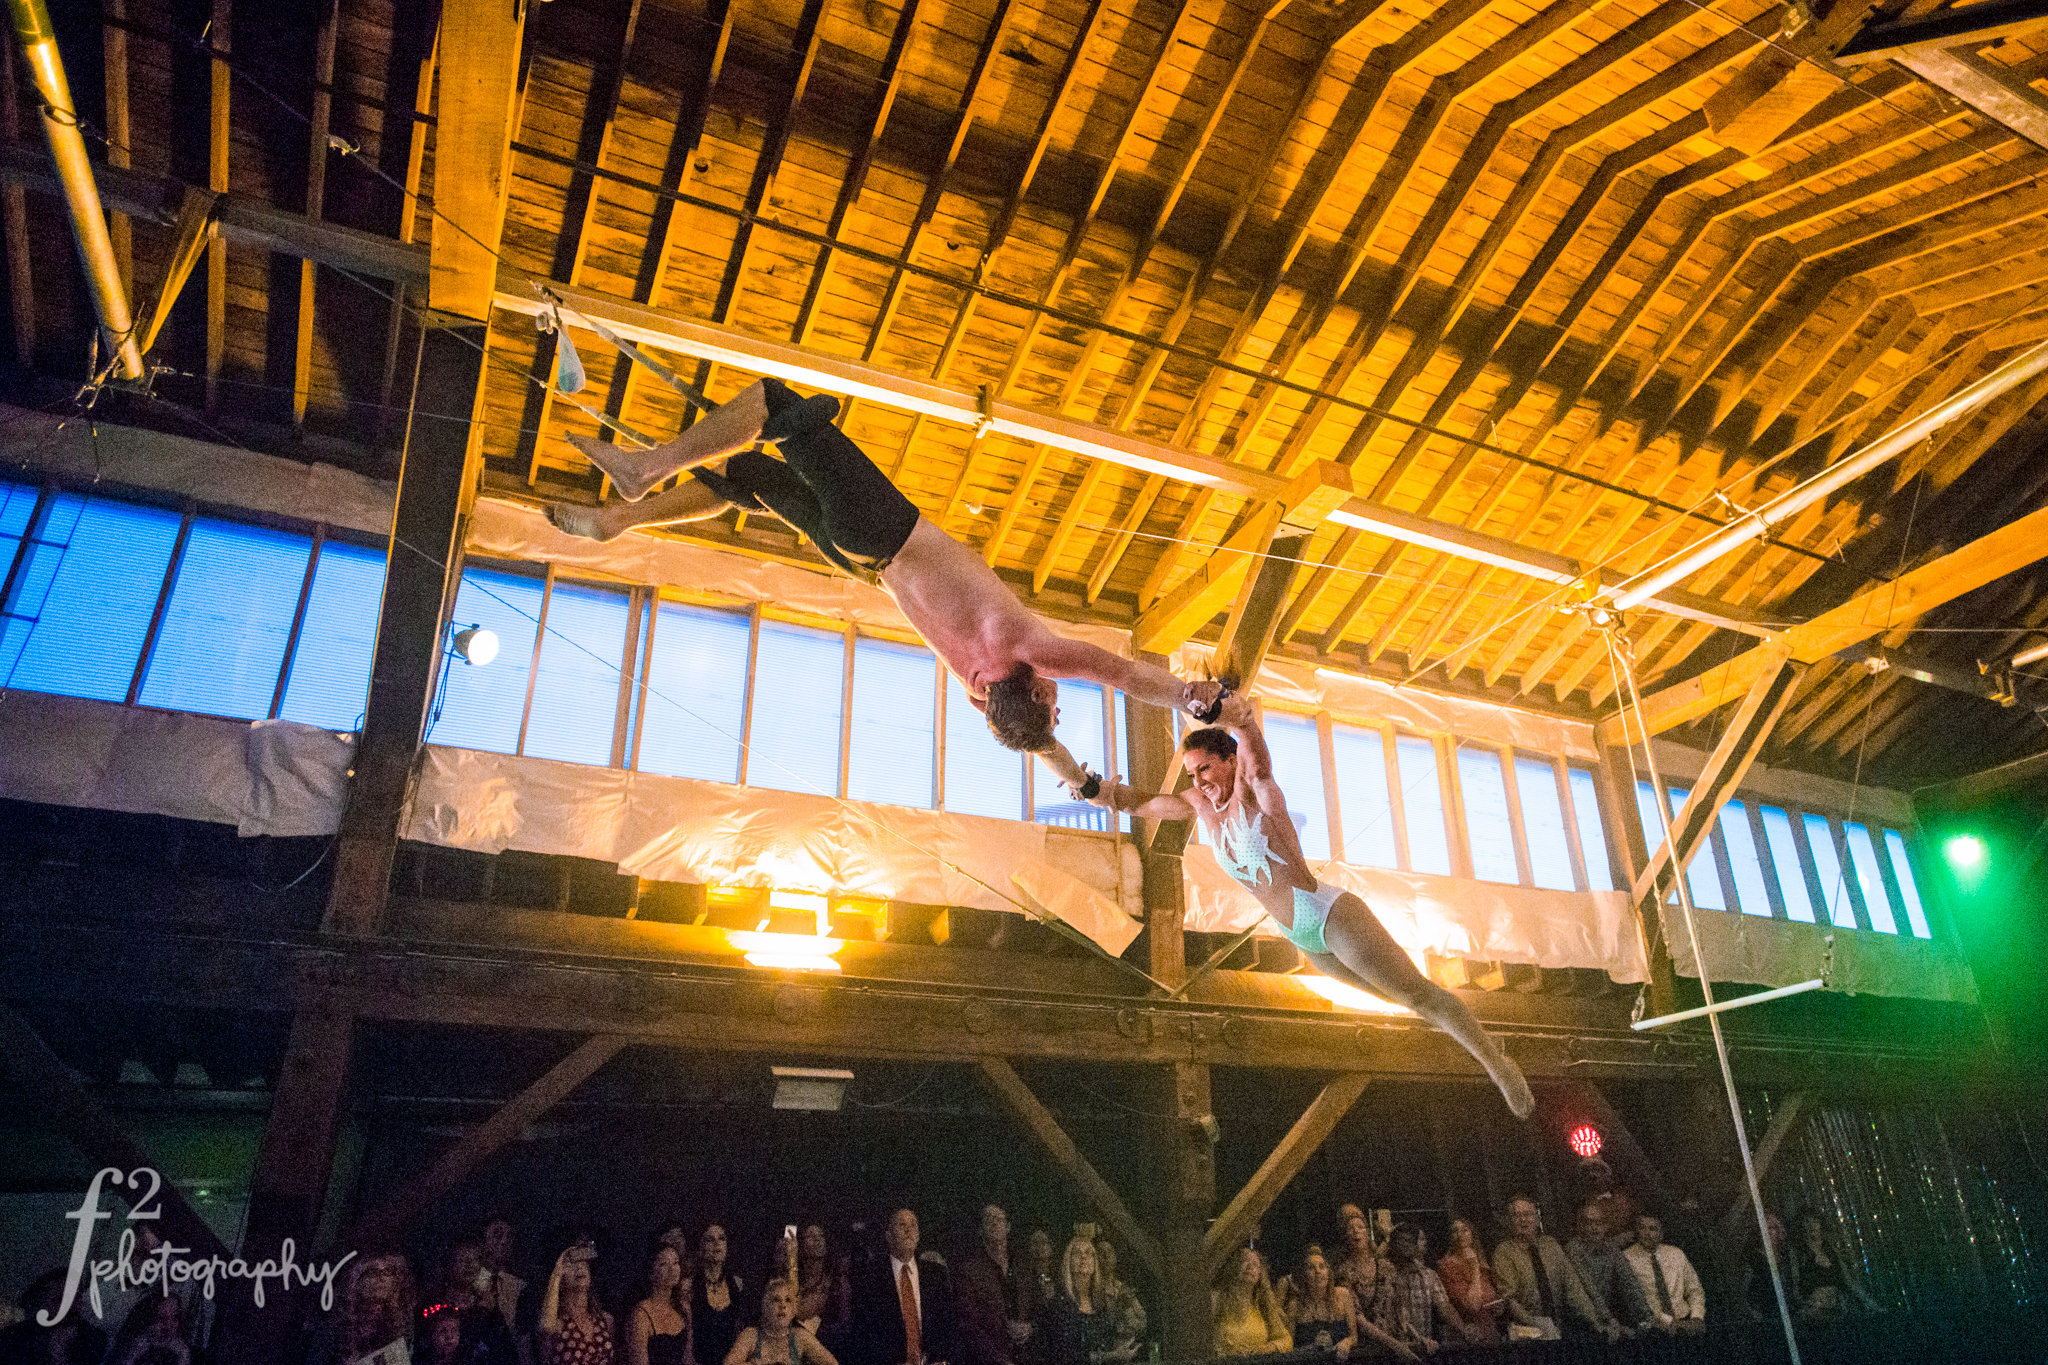 Flying Trapeze Performance at Weddings, Corporate Events, and parties at Emerald City Trapeze Arts